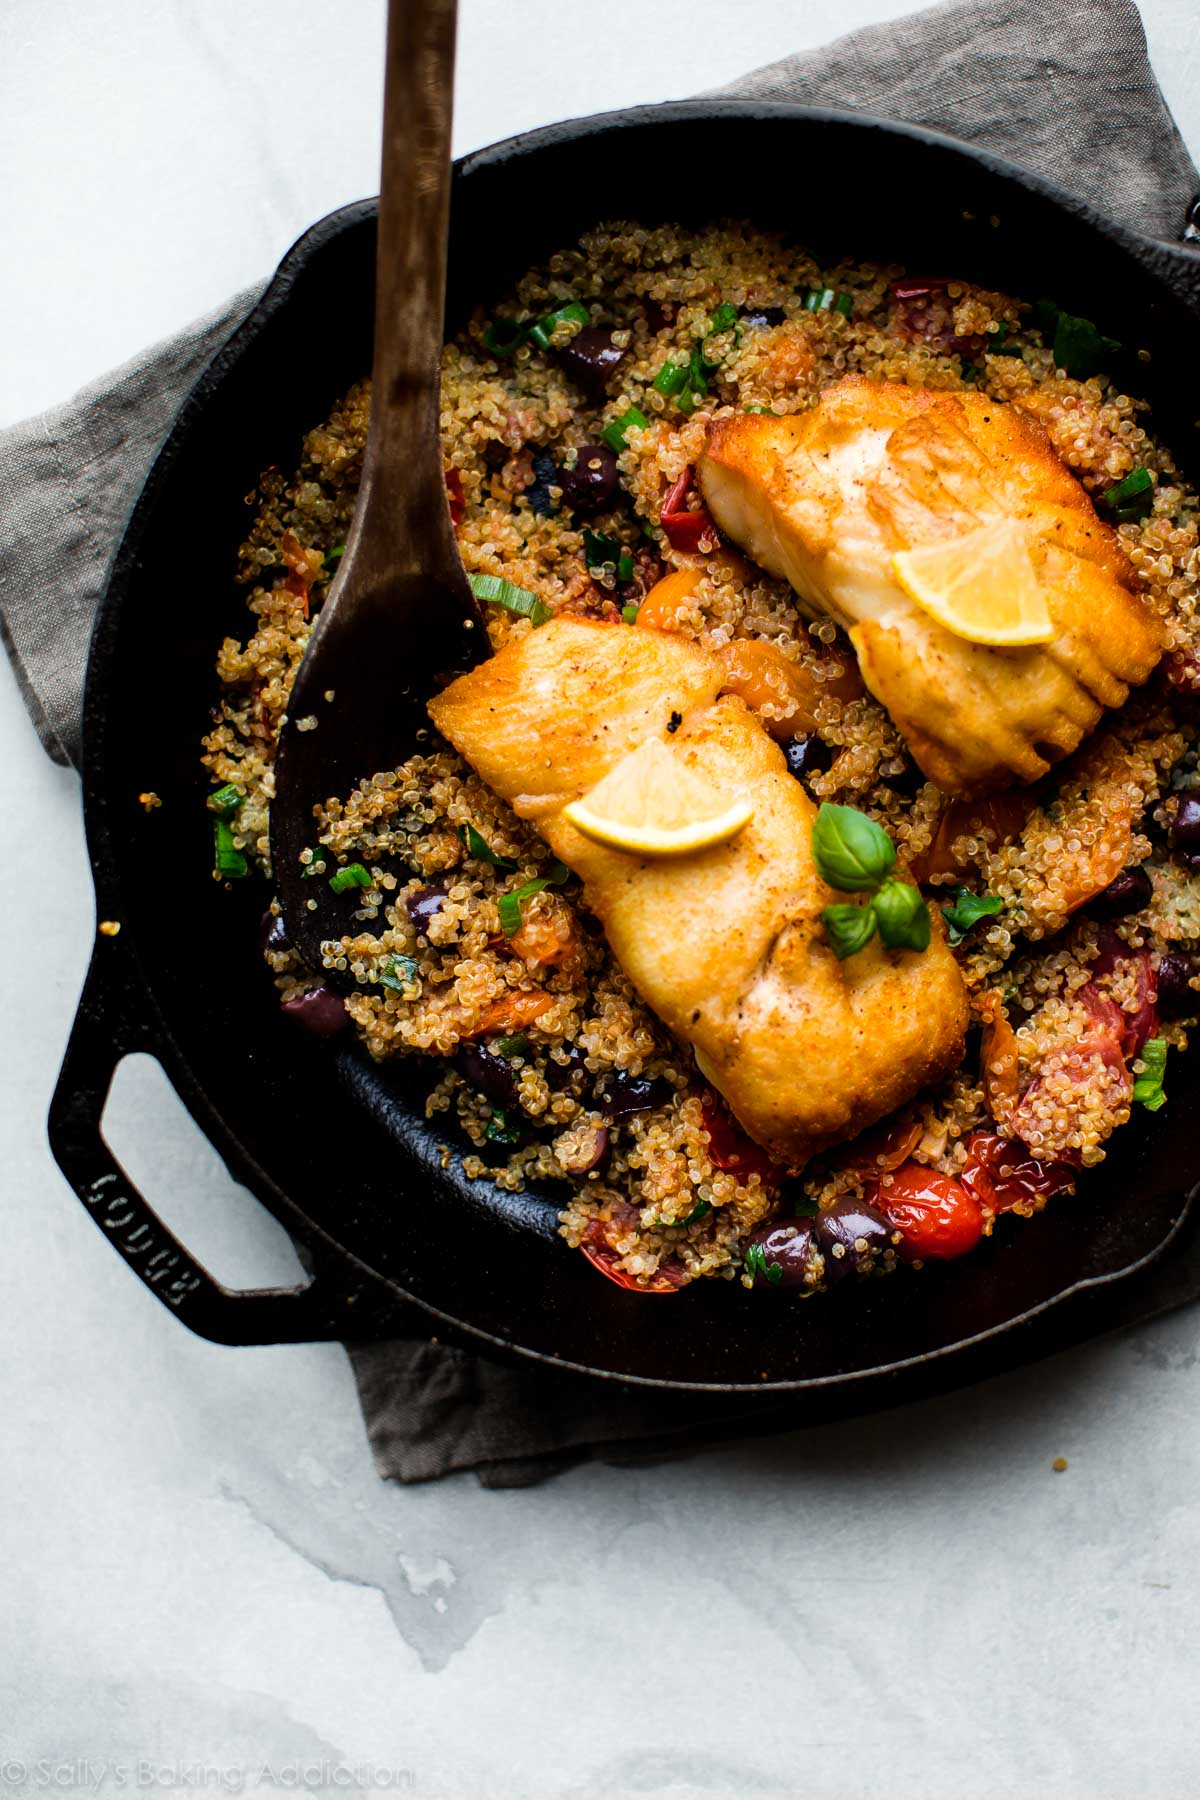 Full of fresh and seasonal flavors, this crispy pan-seared halibut with tomato basil quinoa is a healthy and naturally gluten free meal that's easy, quick, and satisfies! Recipe on sallysbakingaddiction.com